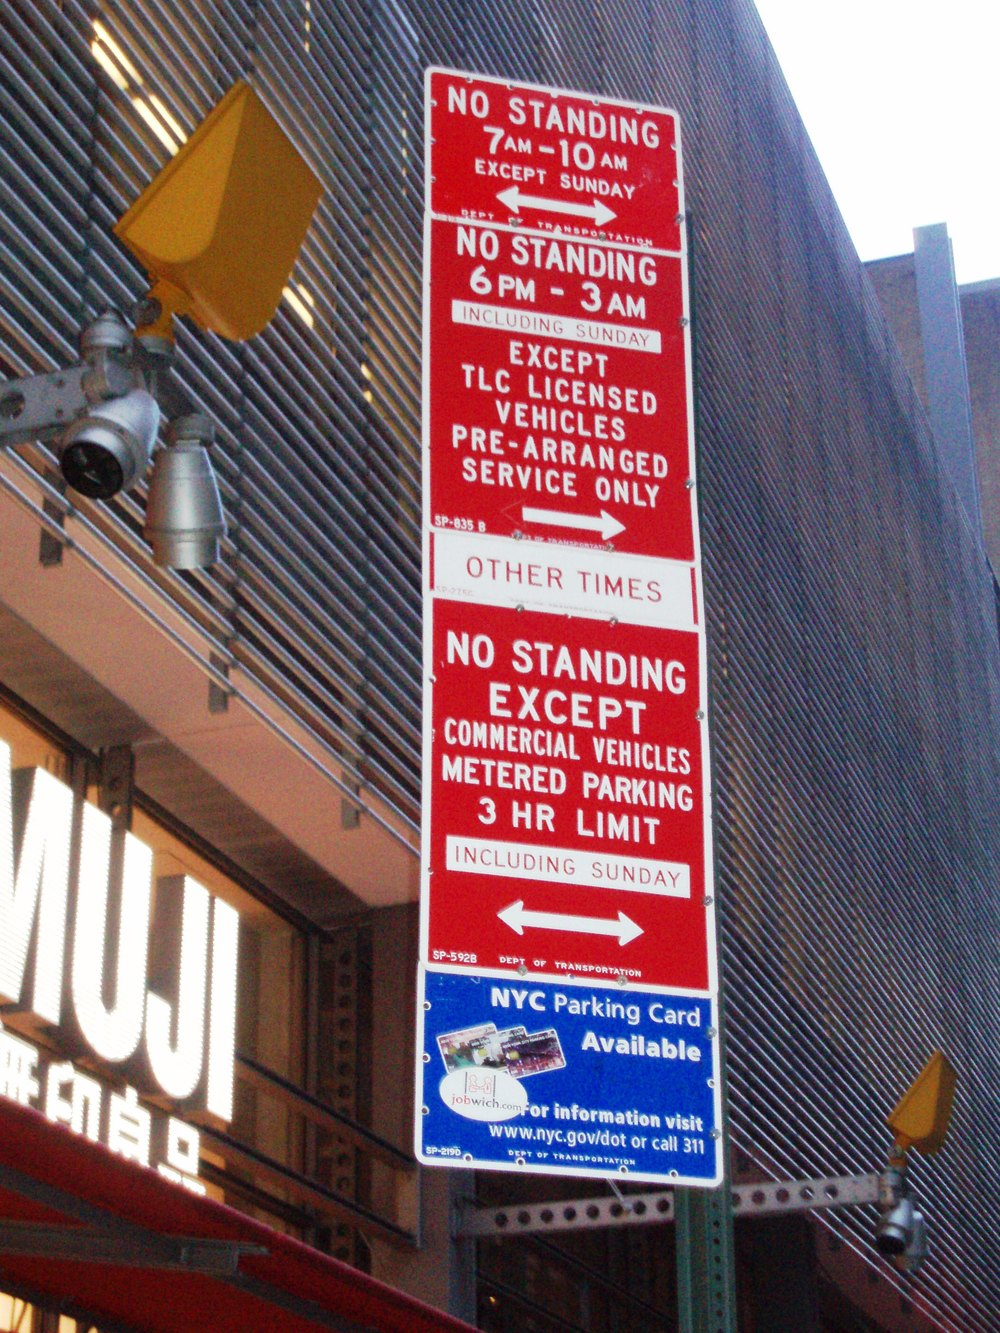 Image via  newyorkparkingticket.com . Very similar to the one I misread.